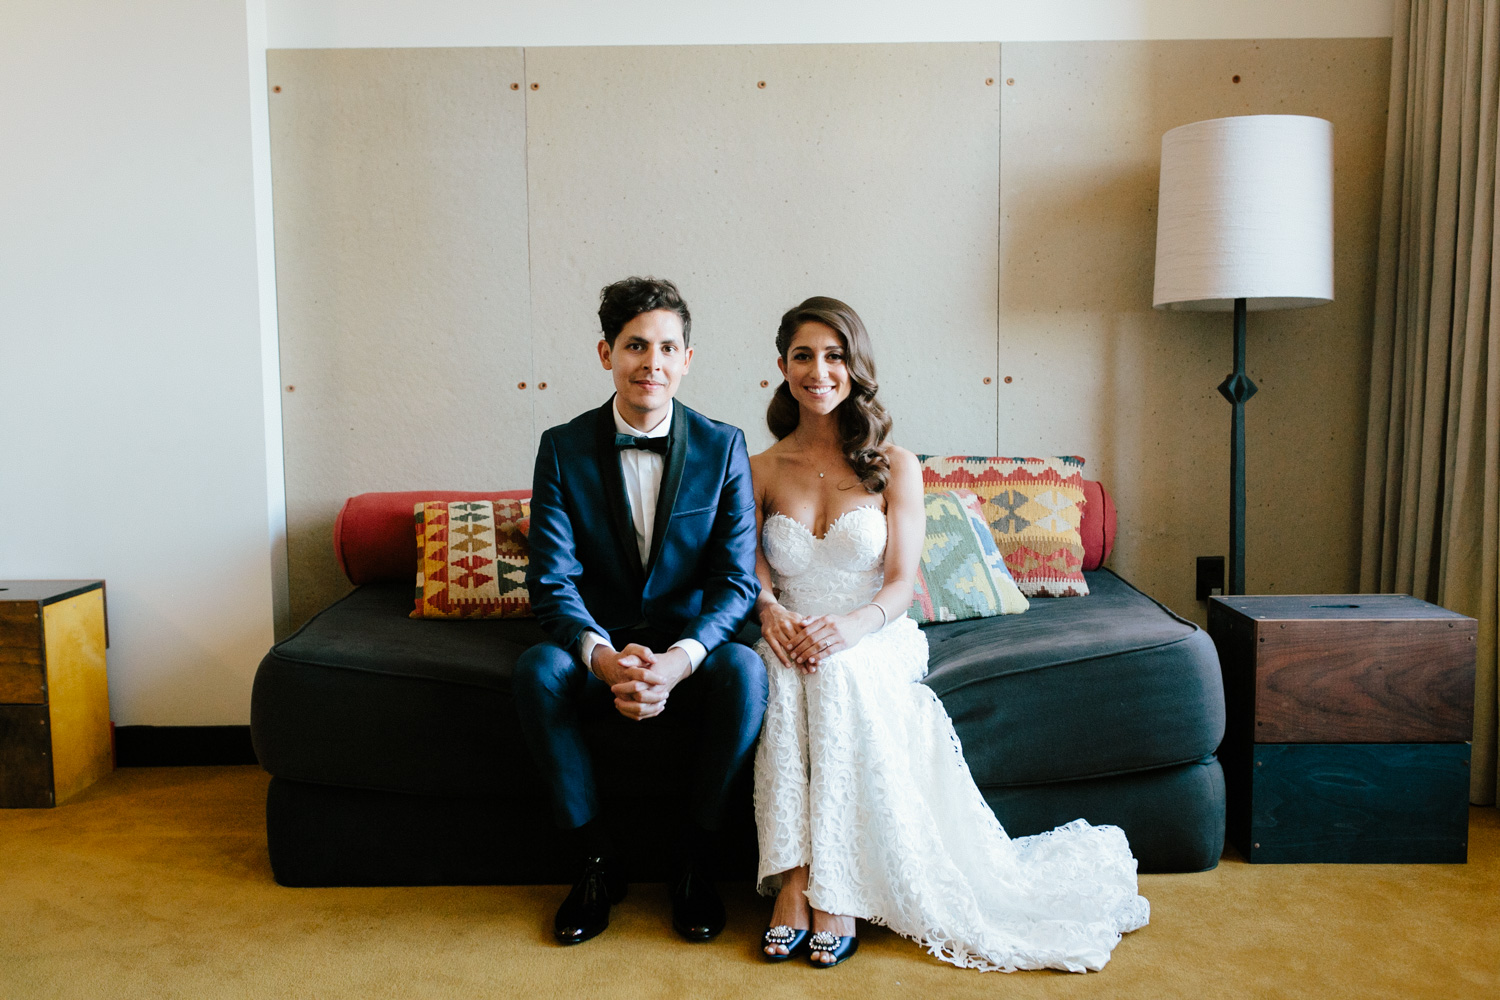 Los Angeles Wedding Photographer, Ace Hotel, Millwick Wedding - The Gathering Season x weareleoandkat 033.JPG